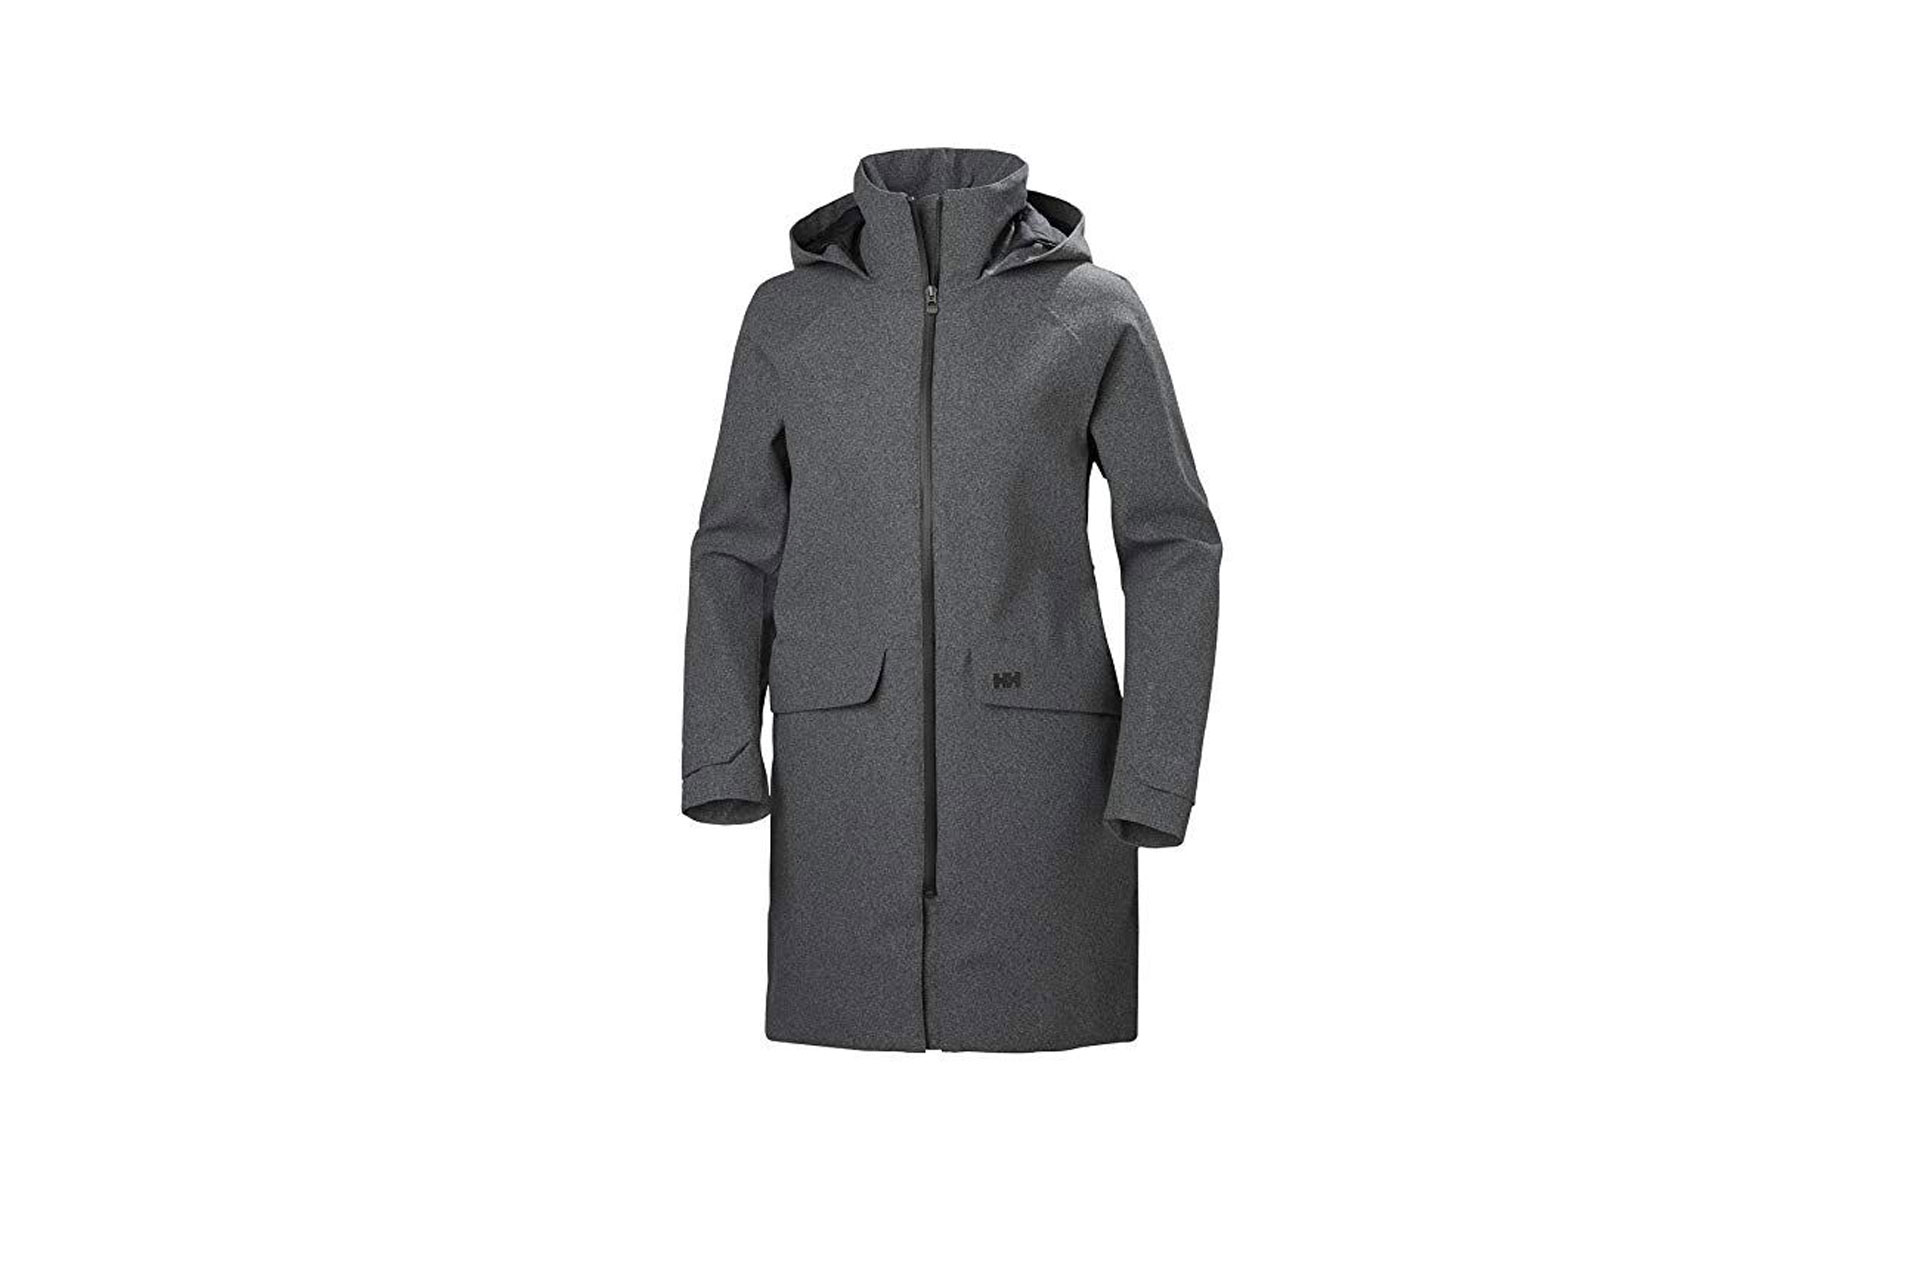 Helly Hansen Womans Coat; Courtesy of Amazon